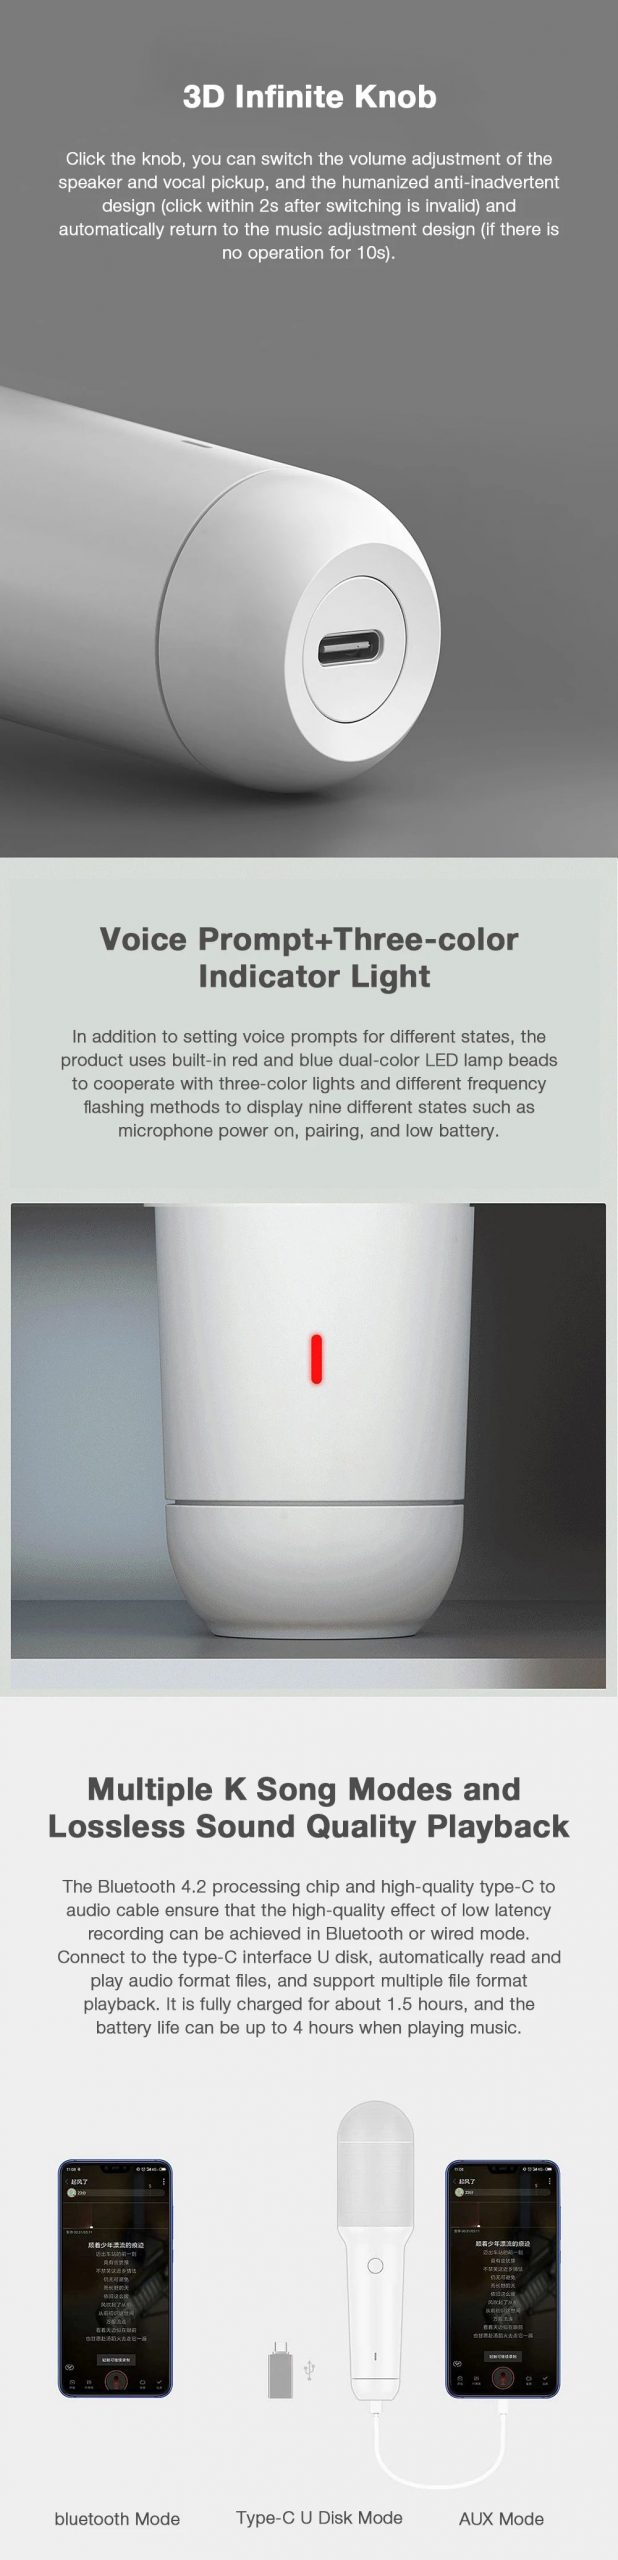 Xiaomi Integrated Bluetooth Microphone Wireless Handheld Voice Control Portable Type C Port (5)